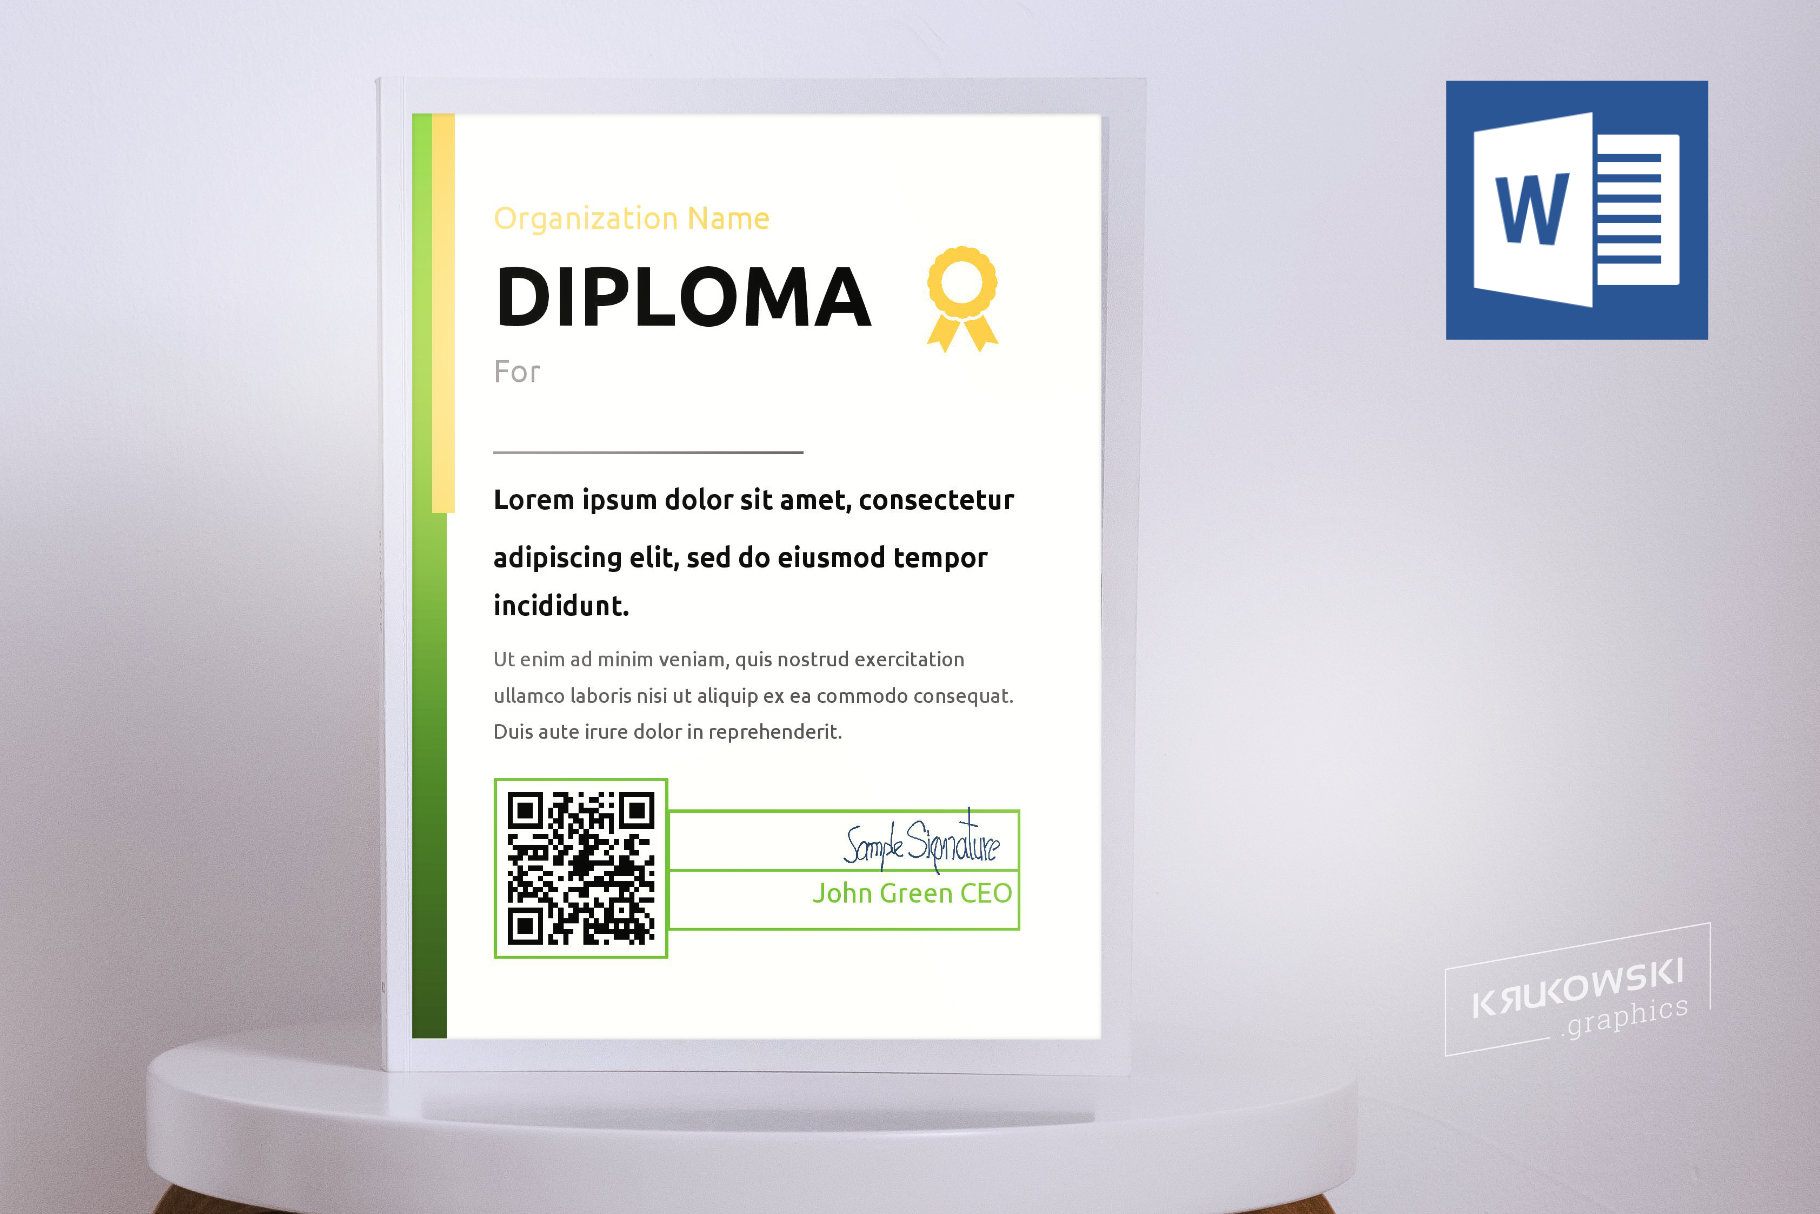 10 Diploma Templates .doc Bundle Pack 50 off example image 4